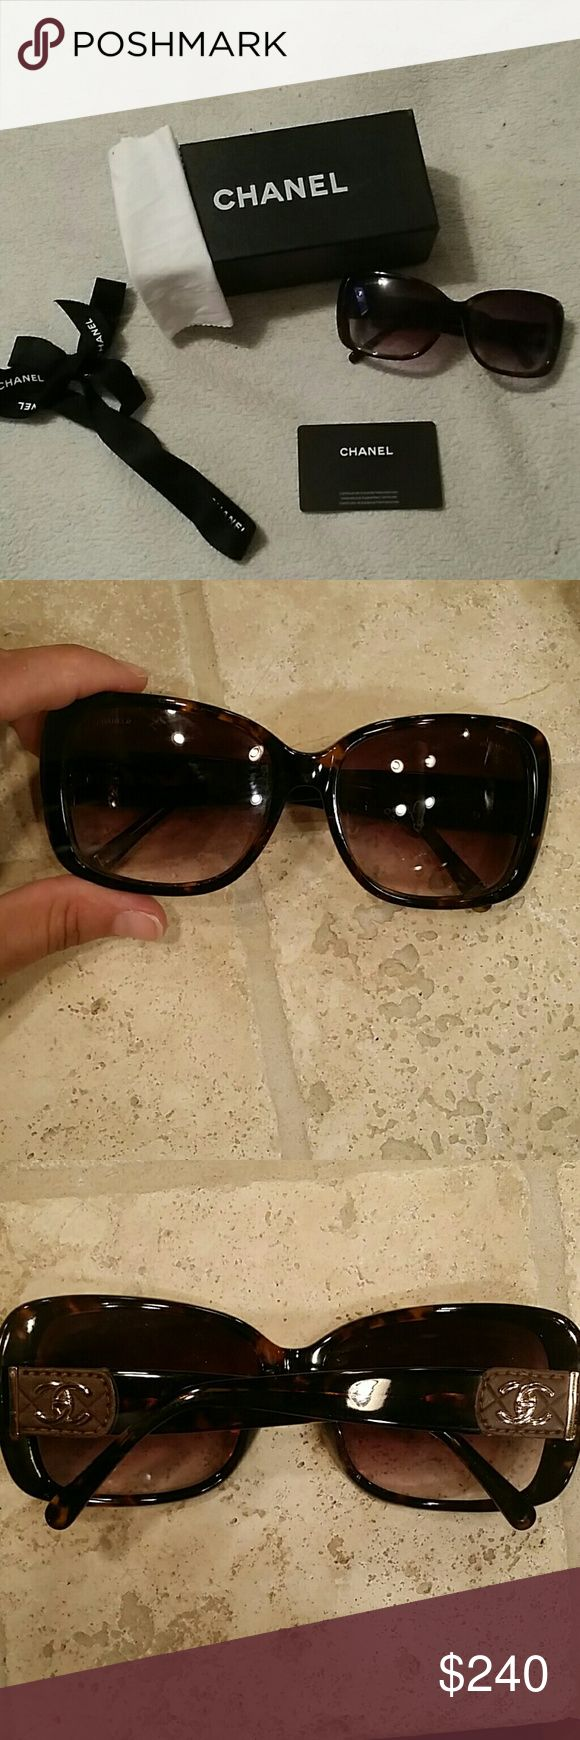 Chanel Sunglasses-100% Authentic Brown  with Gold Accents..100% authentic..Chanel Sunglasses  are like new with no scratches,  scrapes or imperfections. Comes with Chanel box, Chanel card, and Chanel sunglass cloth. I have misplaced the case. CHANEL Accessories Sunglasses